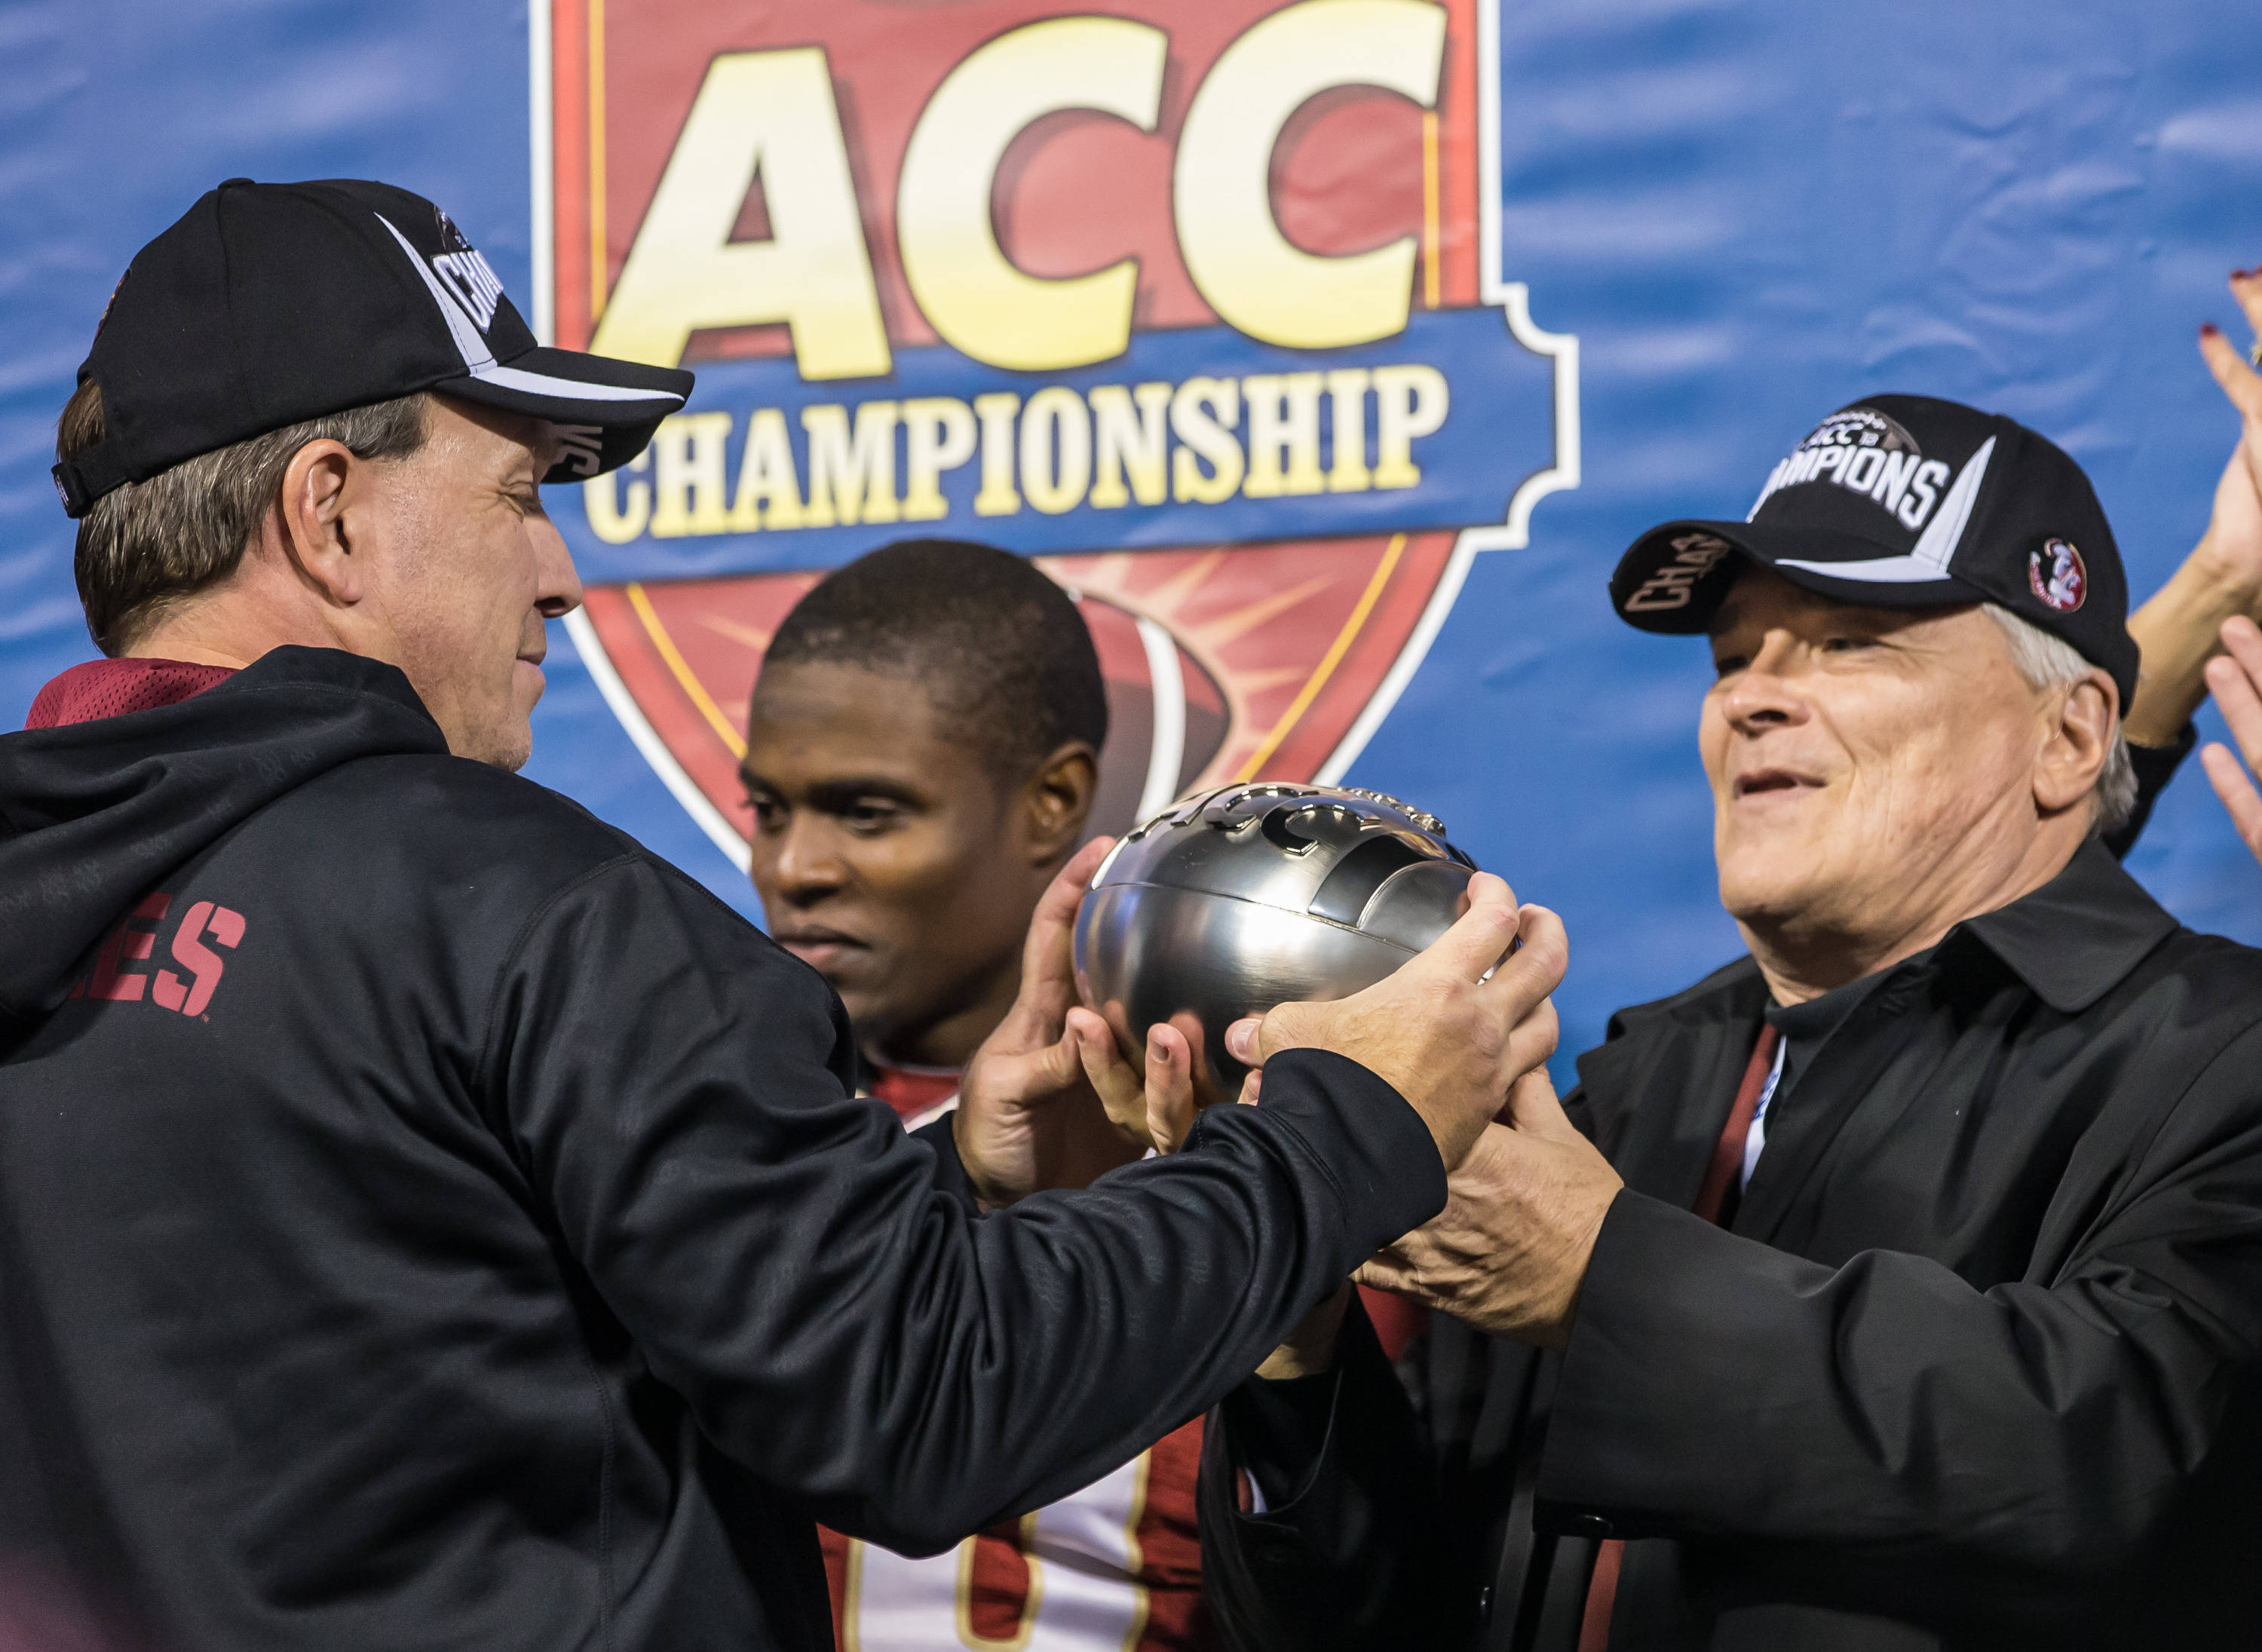 Jimbo Fisher hands off the ACC Championship Trophy to FSU President Eric Barron.